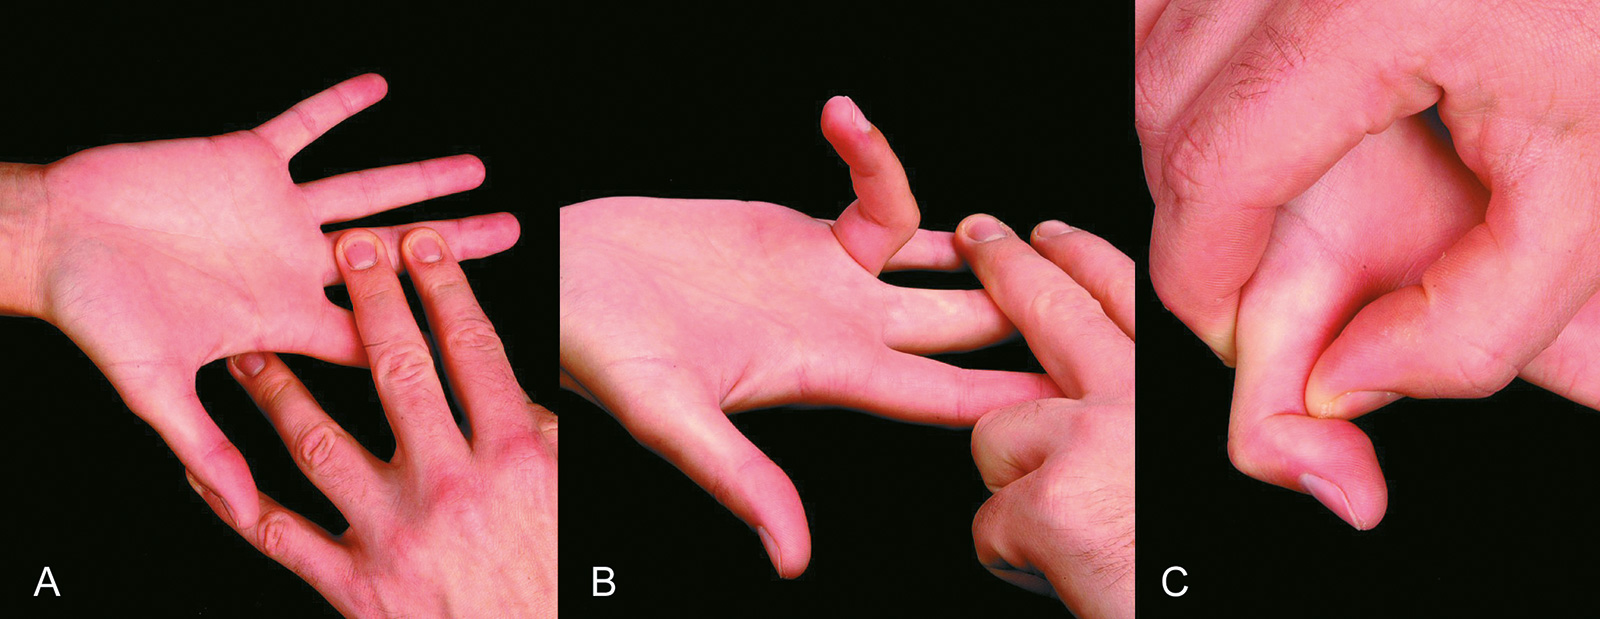 Abb. 7-16: Provokationstest für den Flexor digitorum profundus (A), für den Flexor digitorum superficialis (B) und für den Flexor pollicis profundus (C)